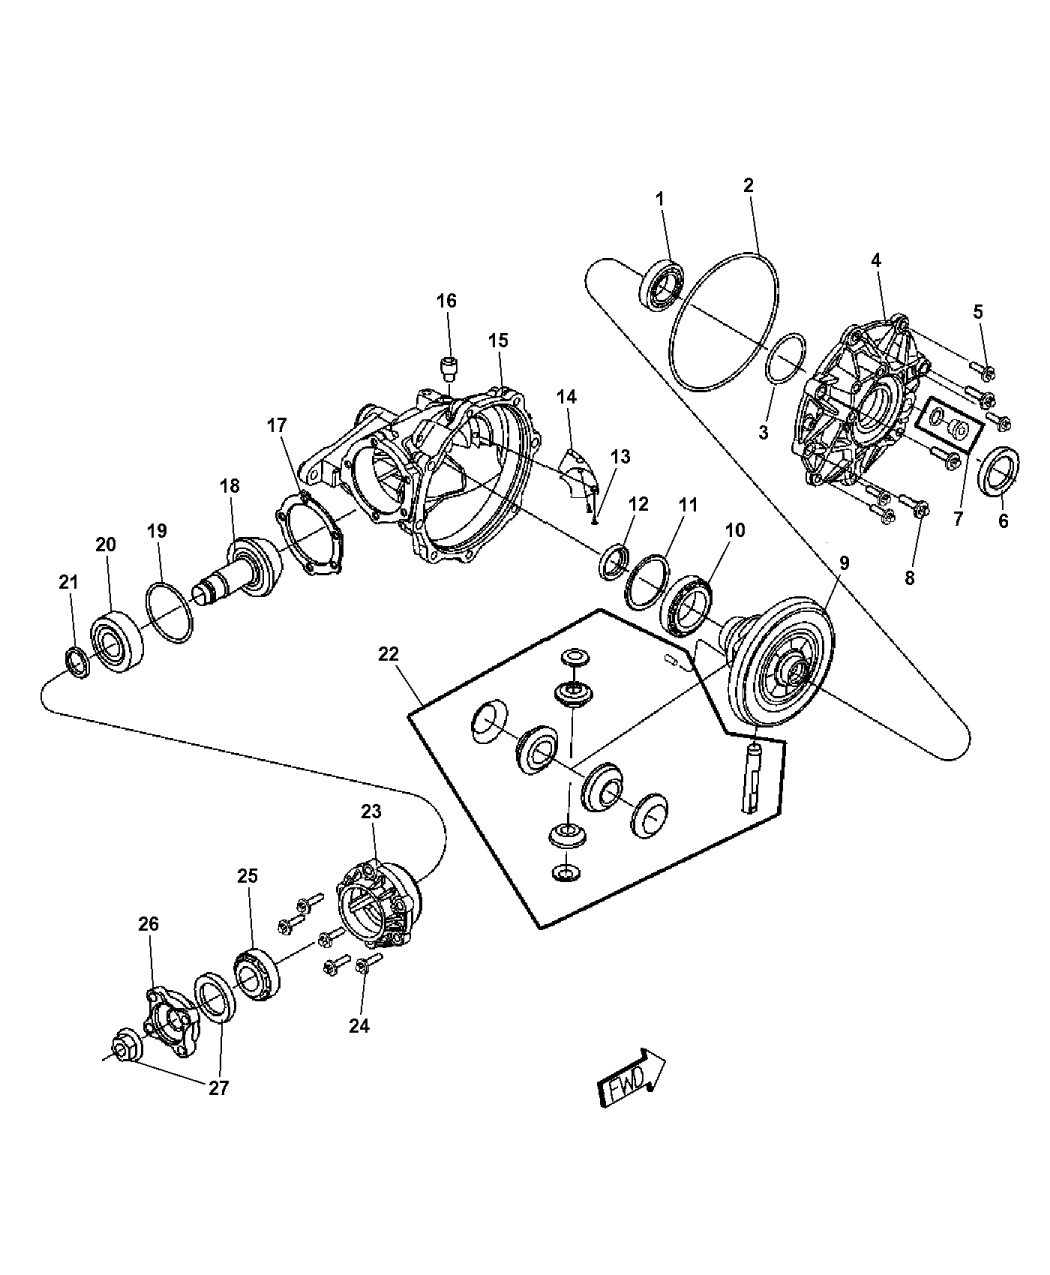 2017 Chrysler 300 Housing And Differential With Internal Components